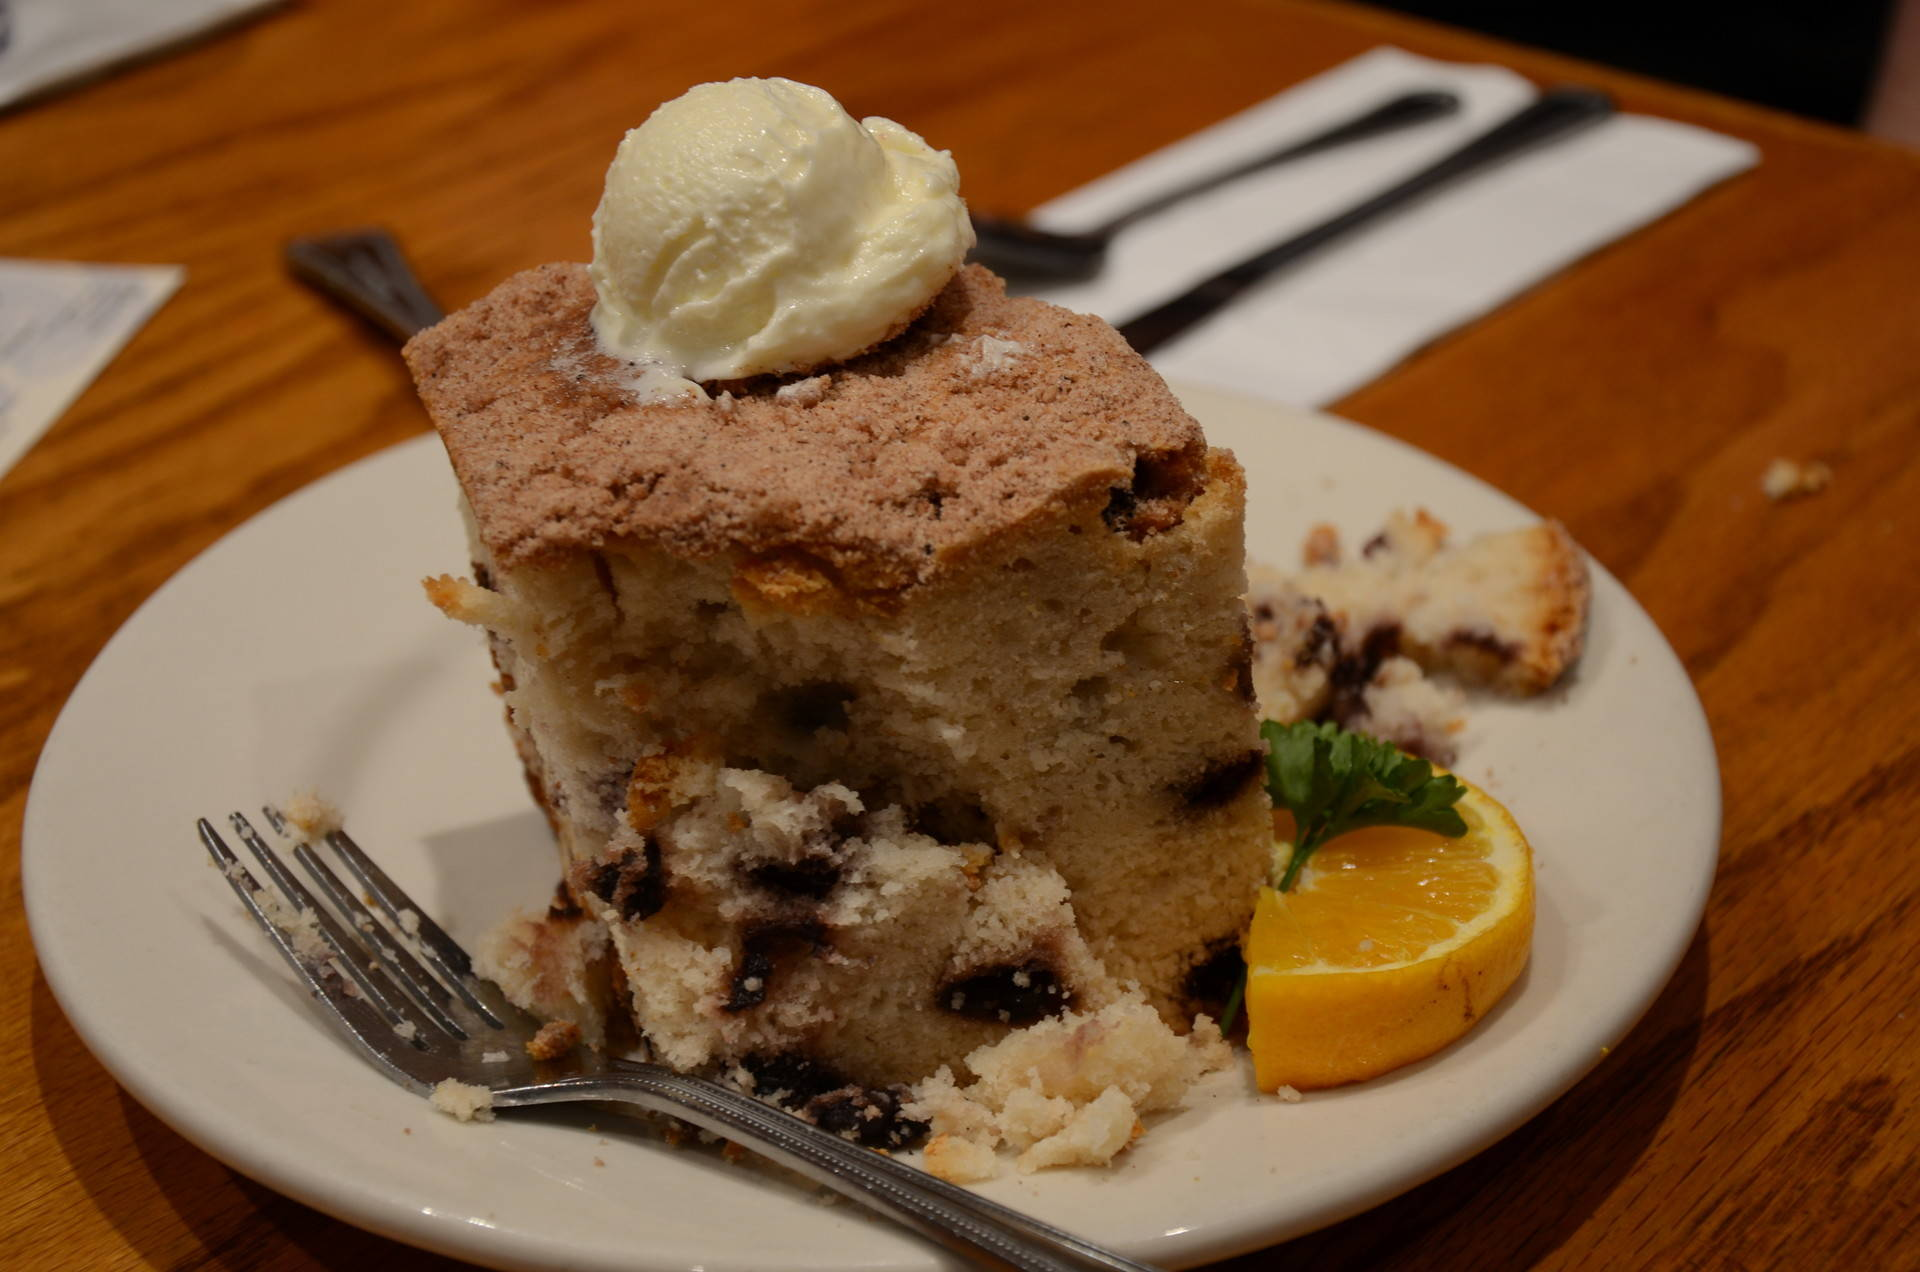 Hobee's famous blueberry coffee cake was invented by Peter Taber in the restaurant's early years. Ryan Levi/KQED